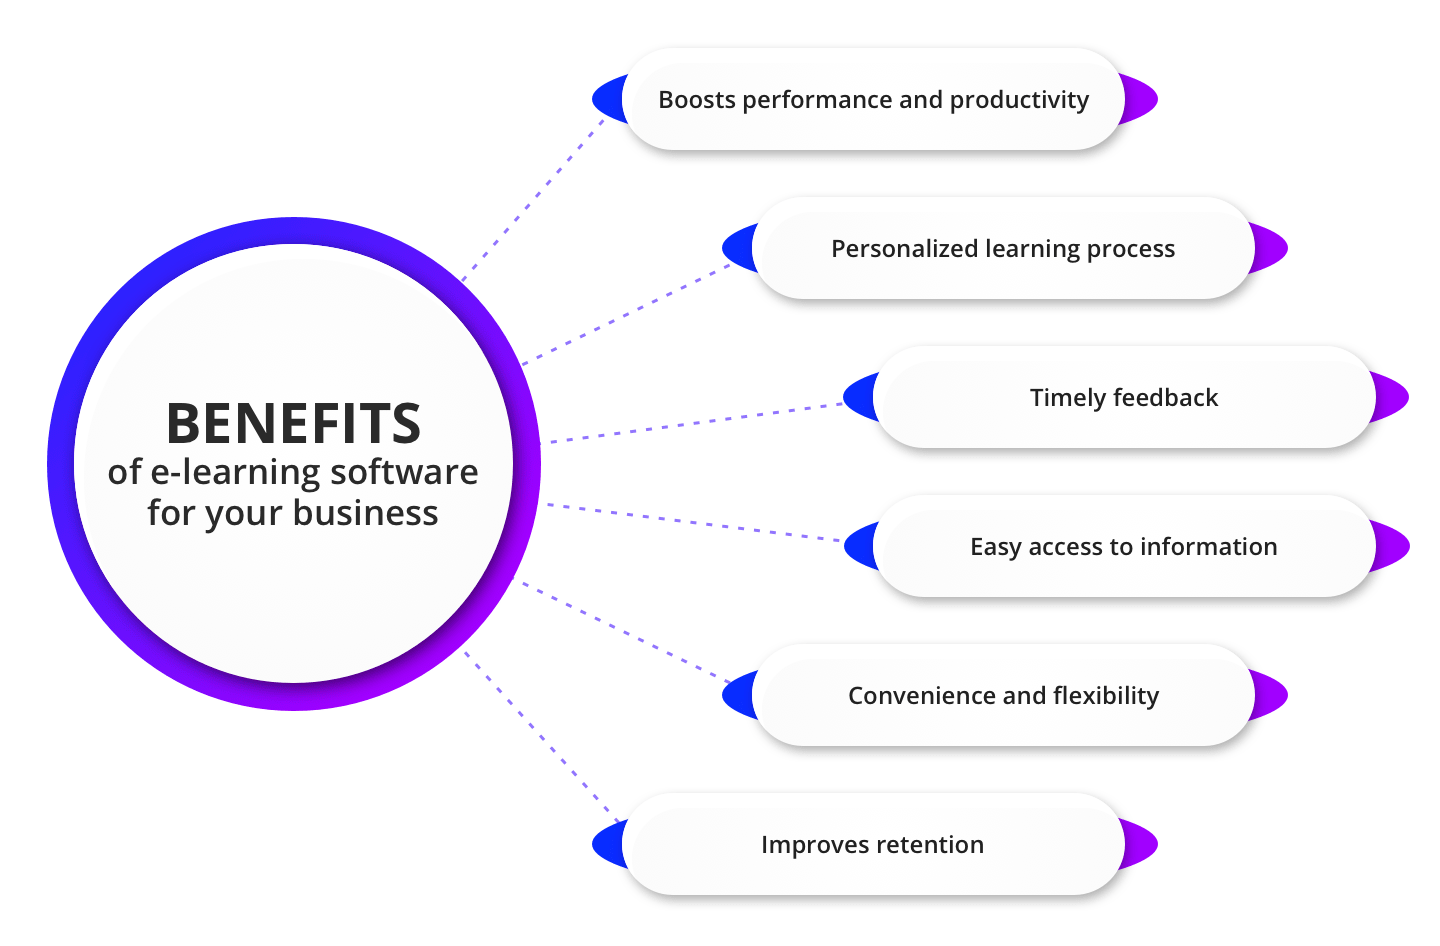 Benefits of e-learning software